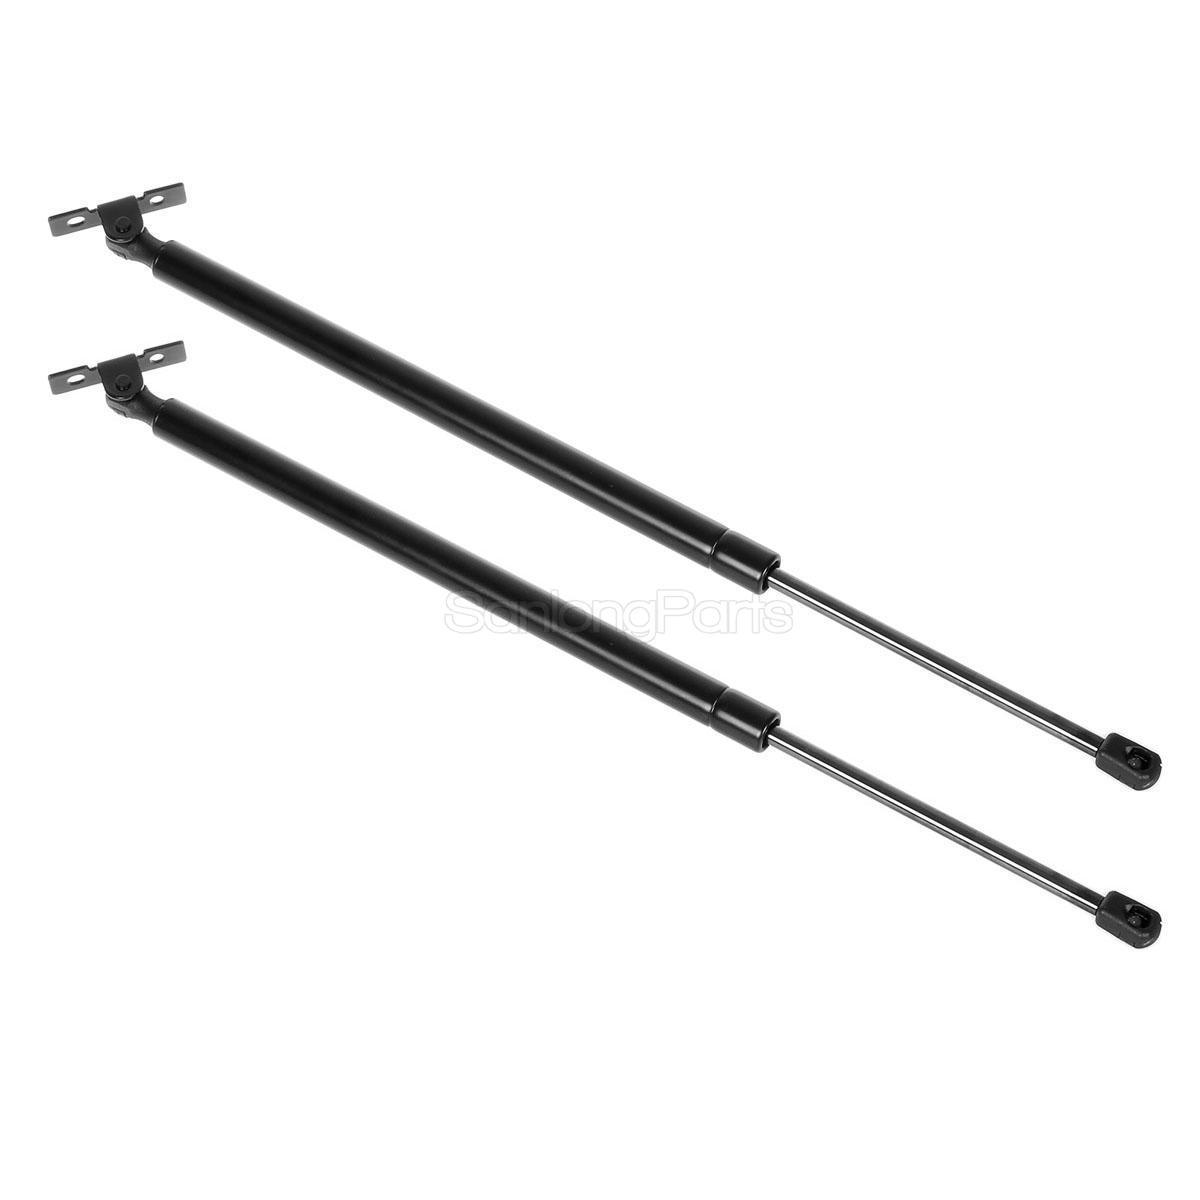 2pcs Rear Liftgate Gas Charged Struts Lift Support